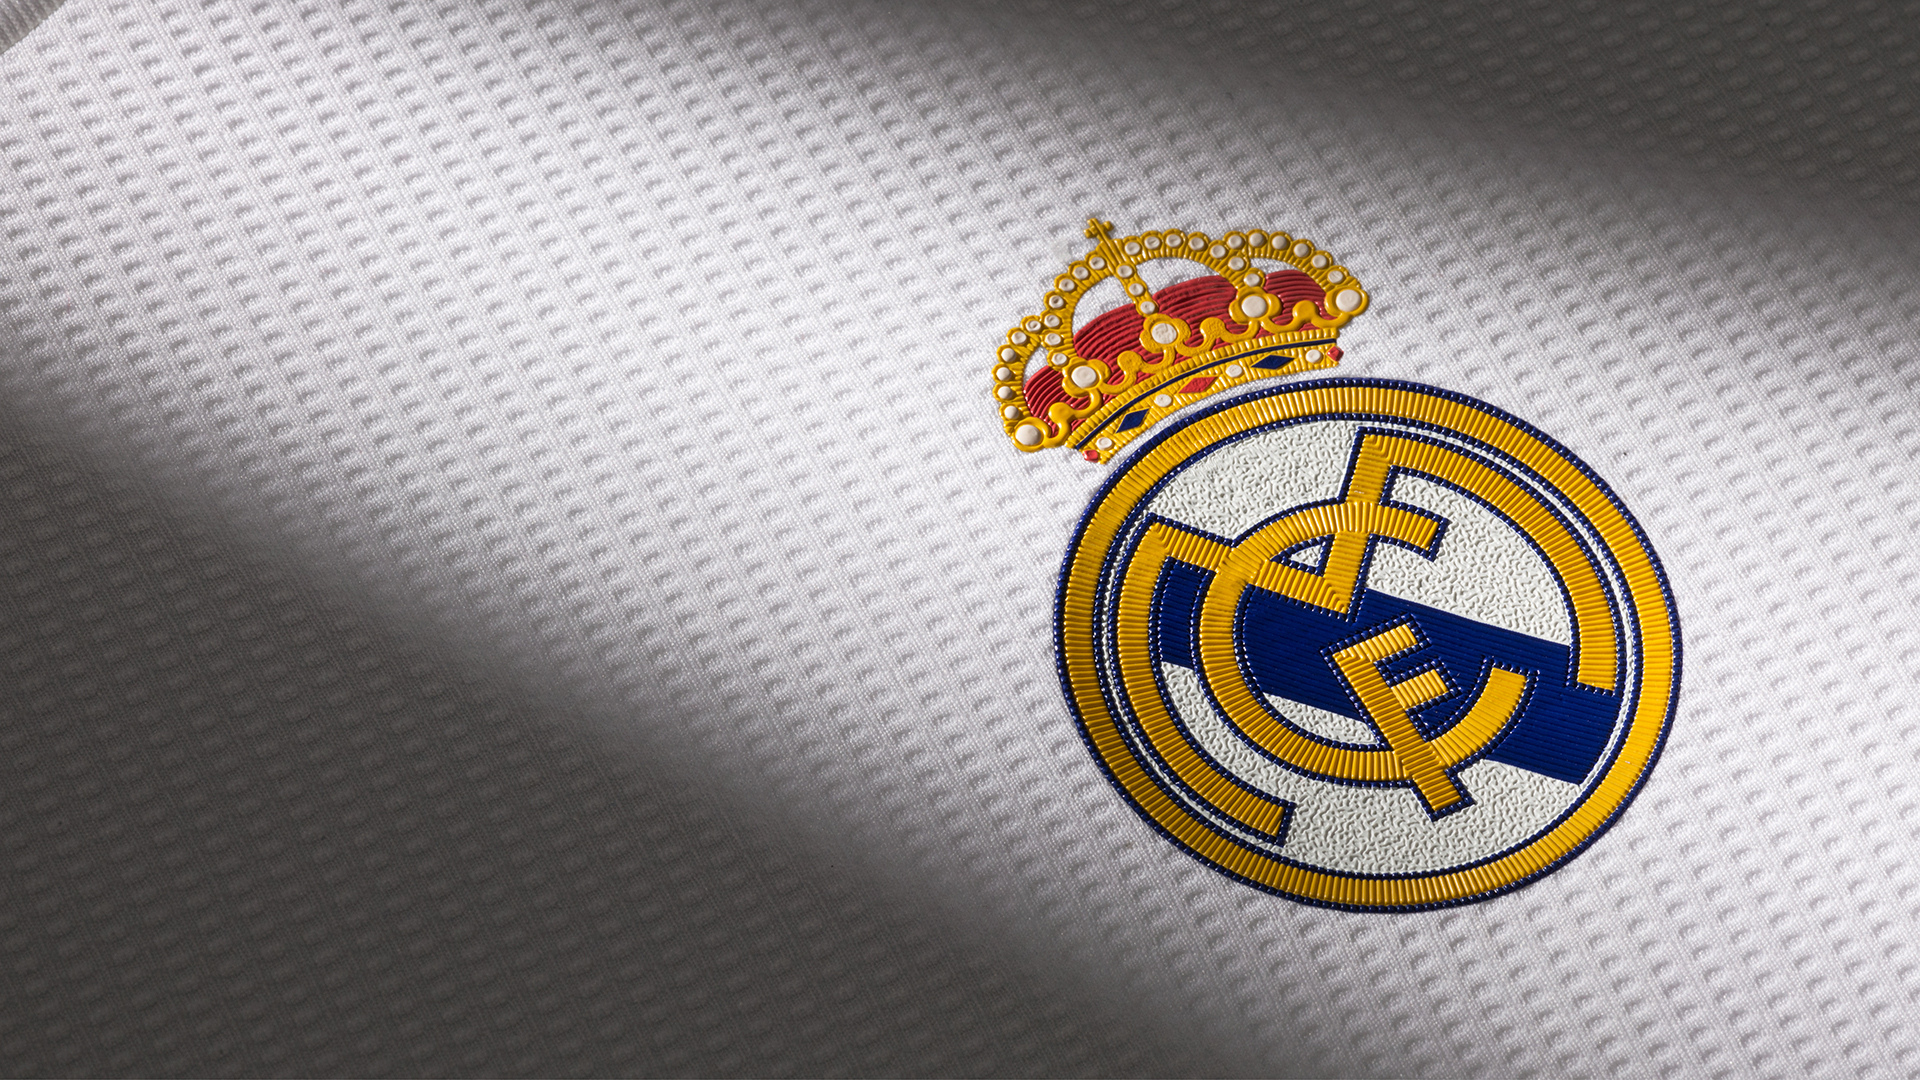 The latest Tweets from Real Madrid CF realmadrid Cuenta oficial del Real Madrid CF realmadriden realmadridarab العربيه